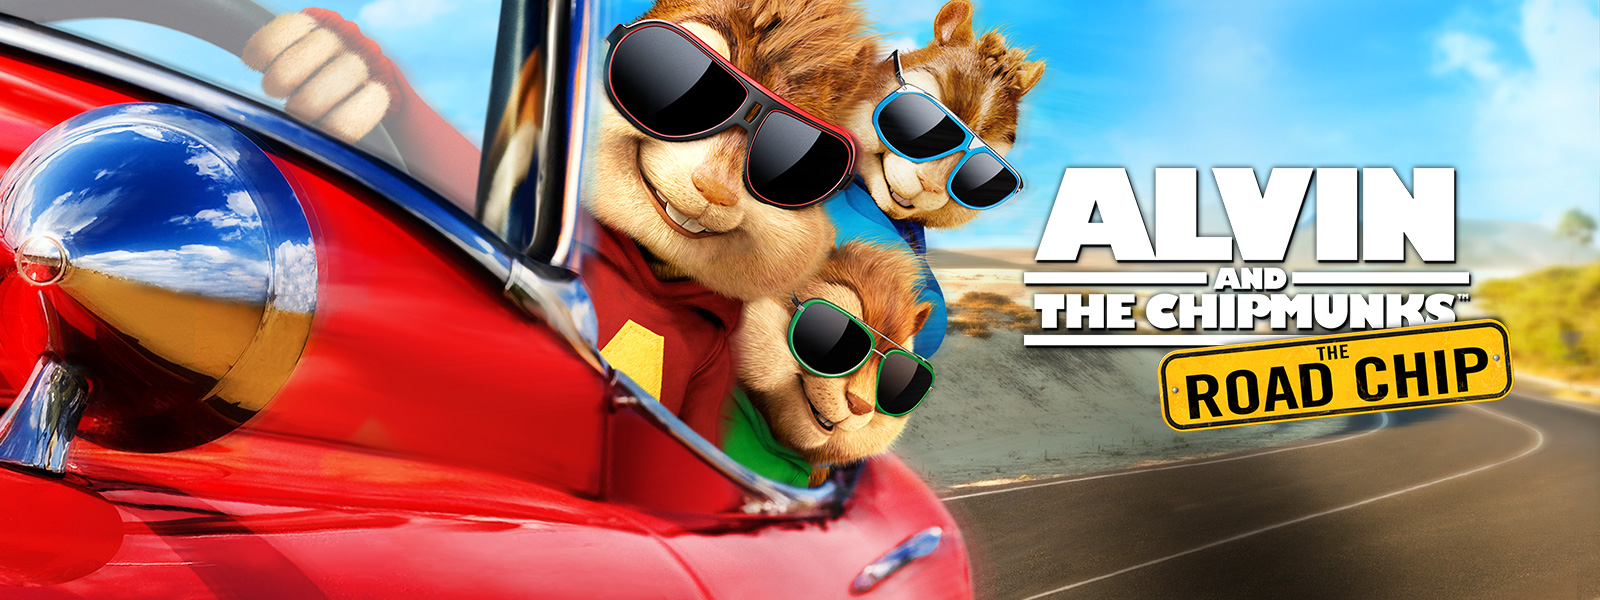 Alvin en de Chipmunks: Road Trip